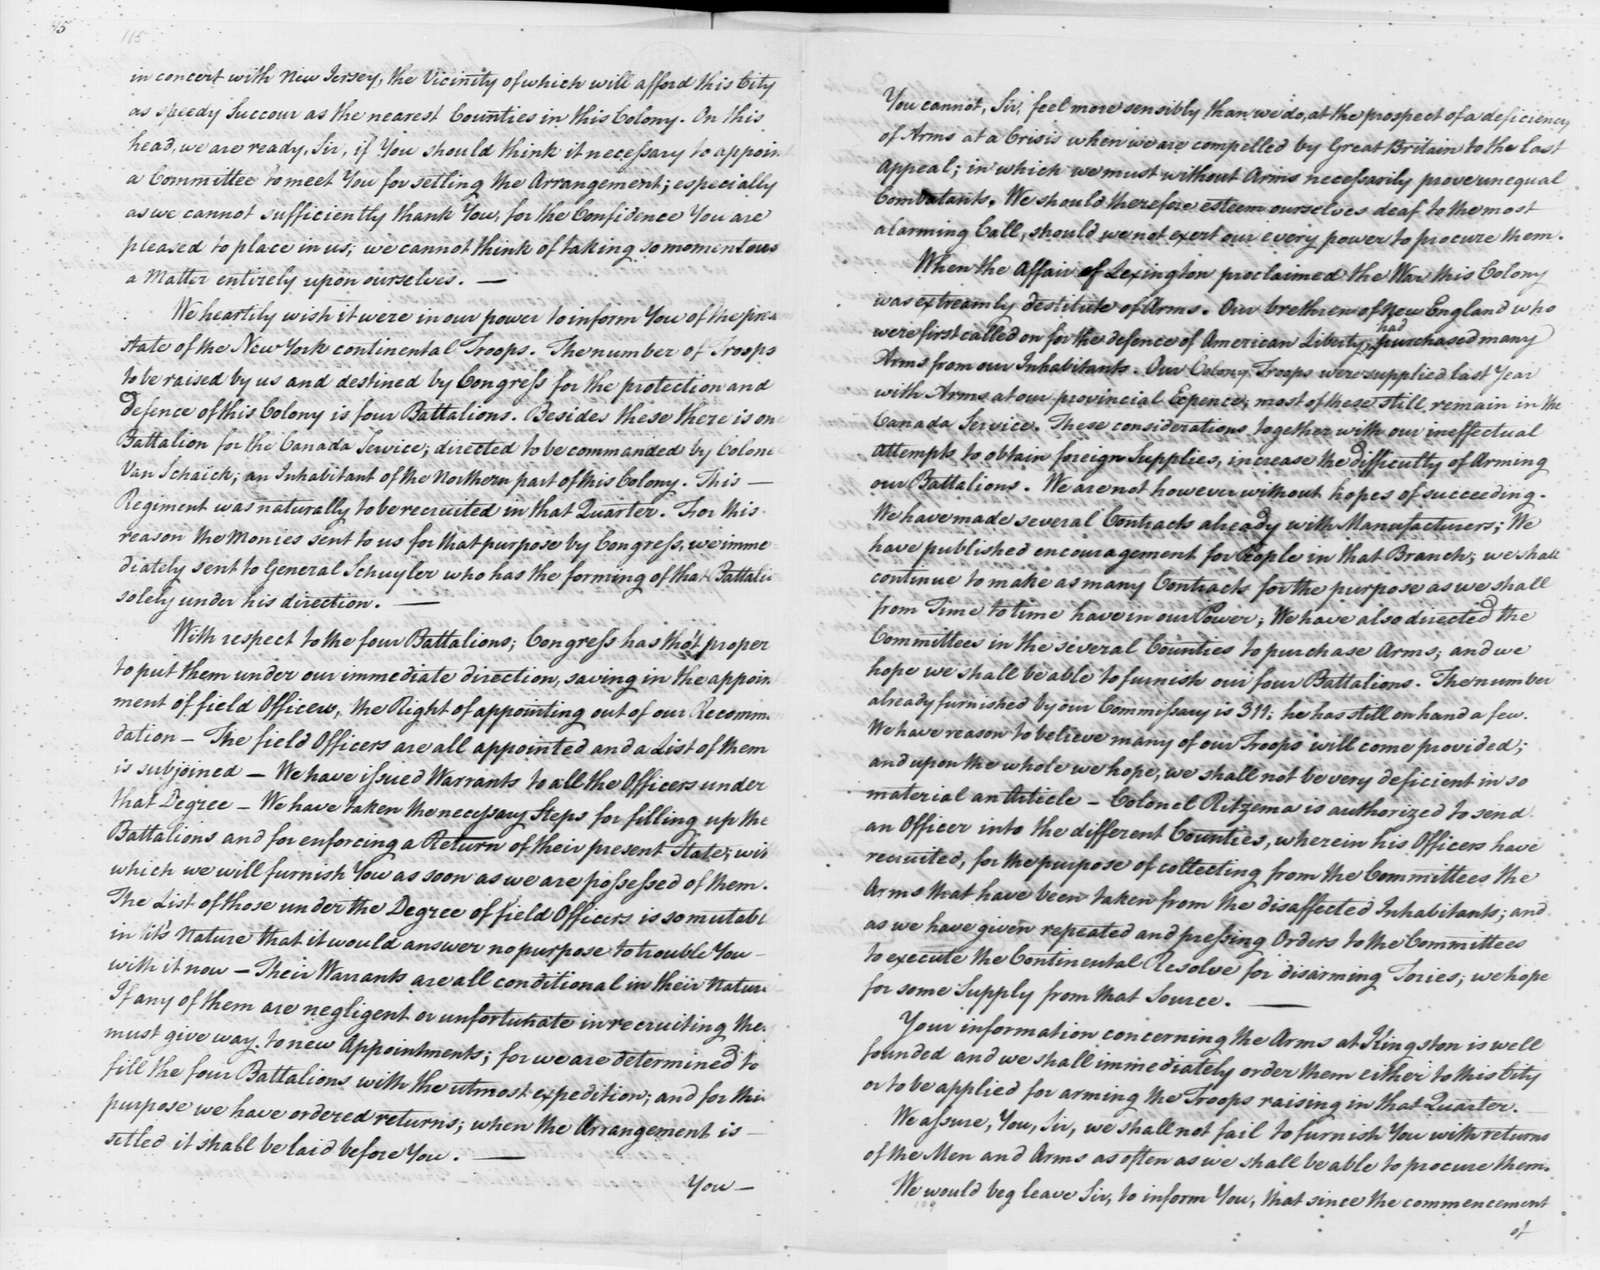 George Washington Papers, Series 4, General Correspondence: New York Safety Committee to George Washington, April 25, 1776, with Account and Officer List